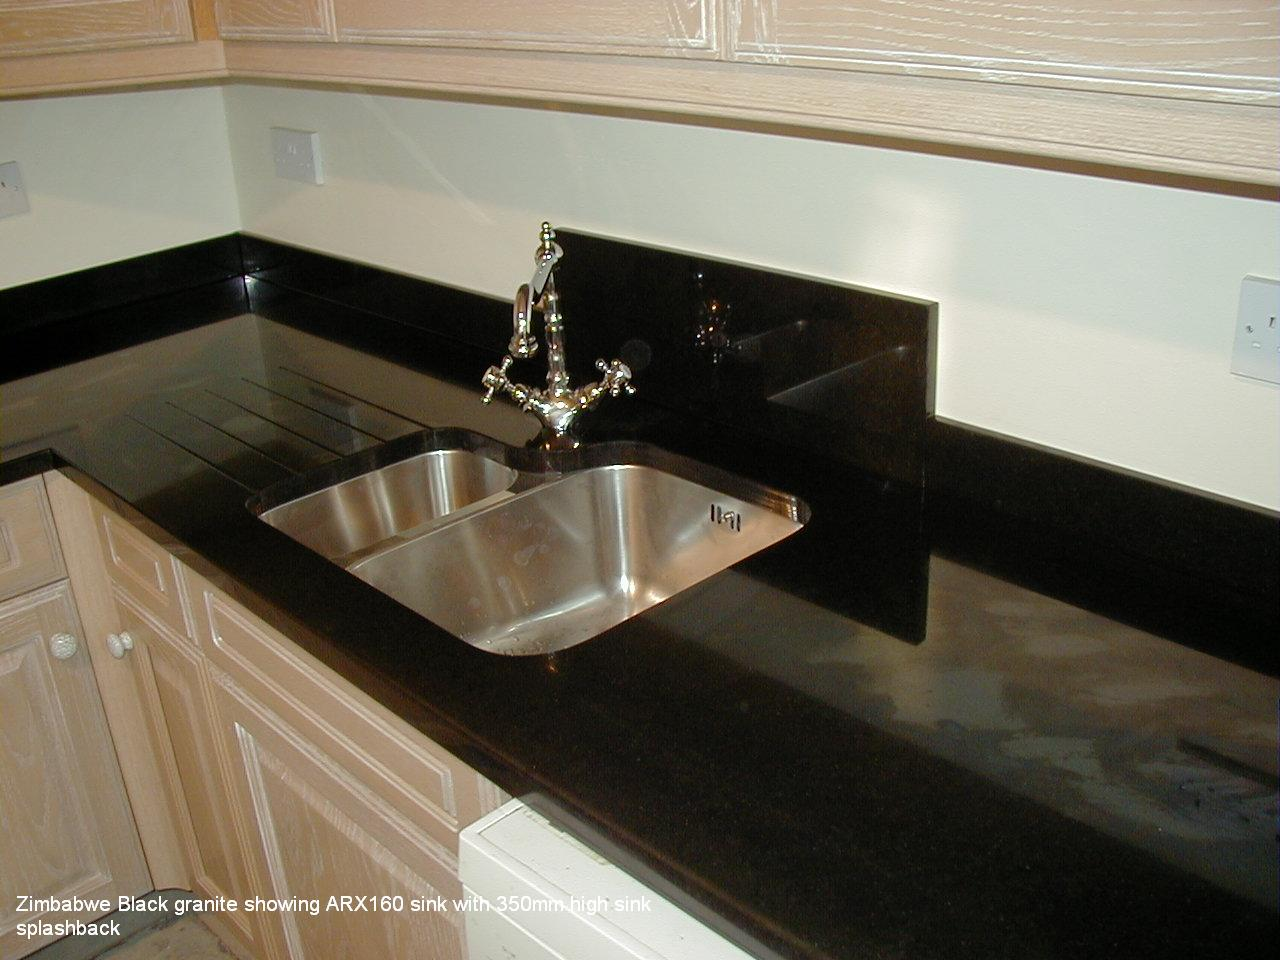 Zimbabwe Black Granite Showing Arx160 Sink With 350mm High Sink Splashback Quince Stoneworks